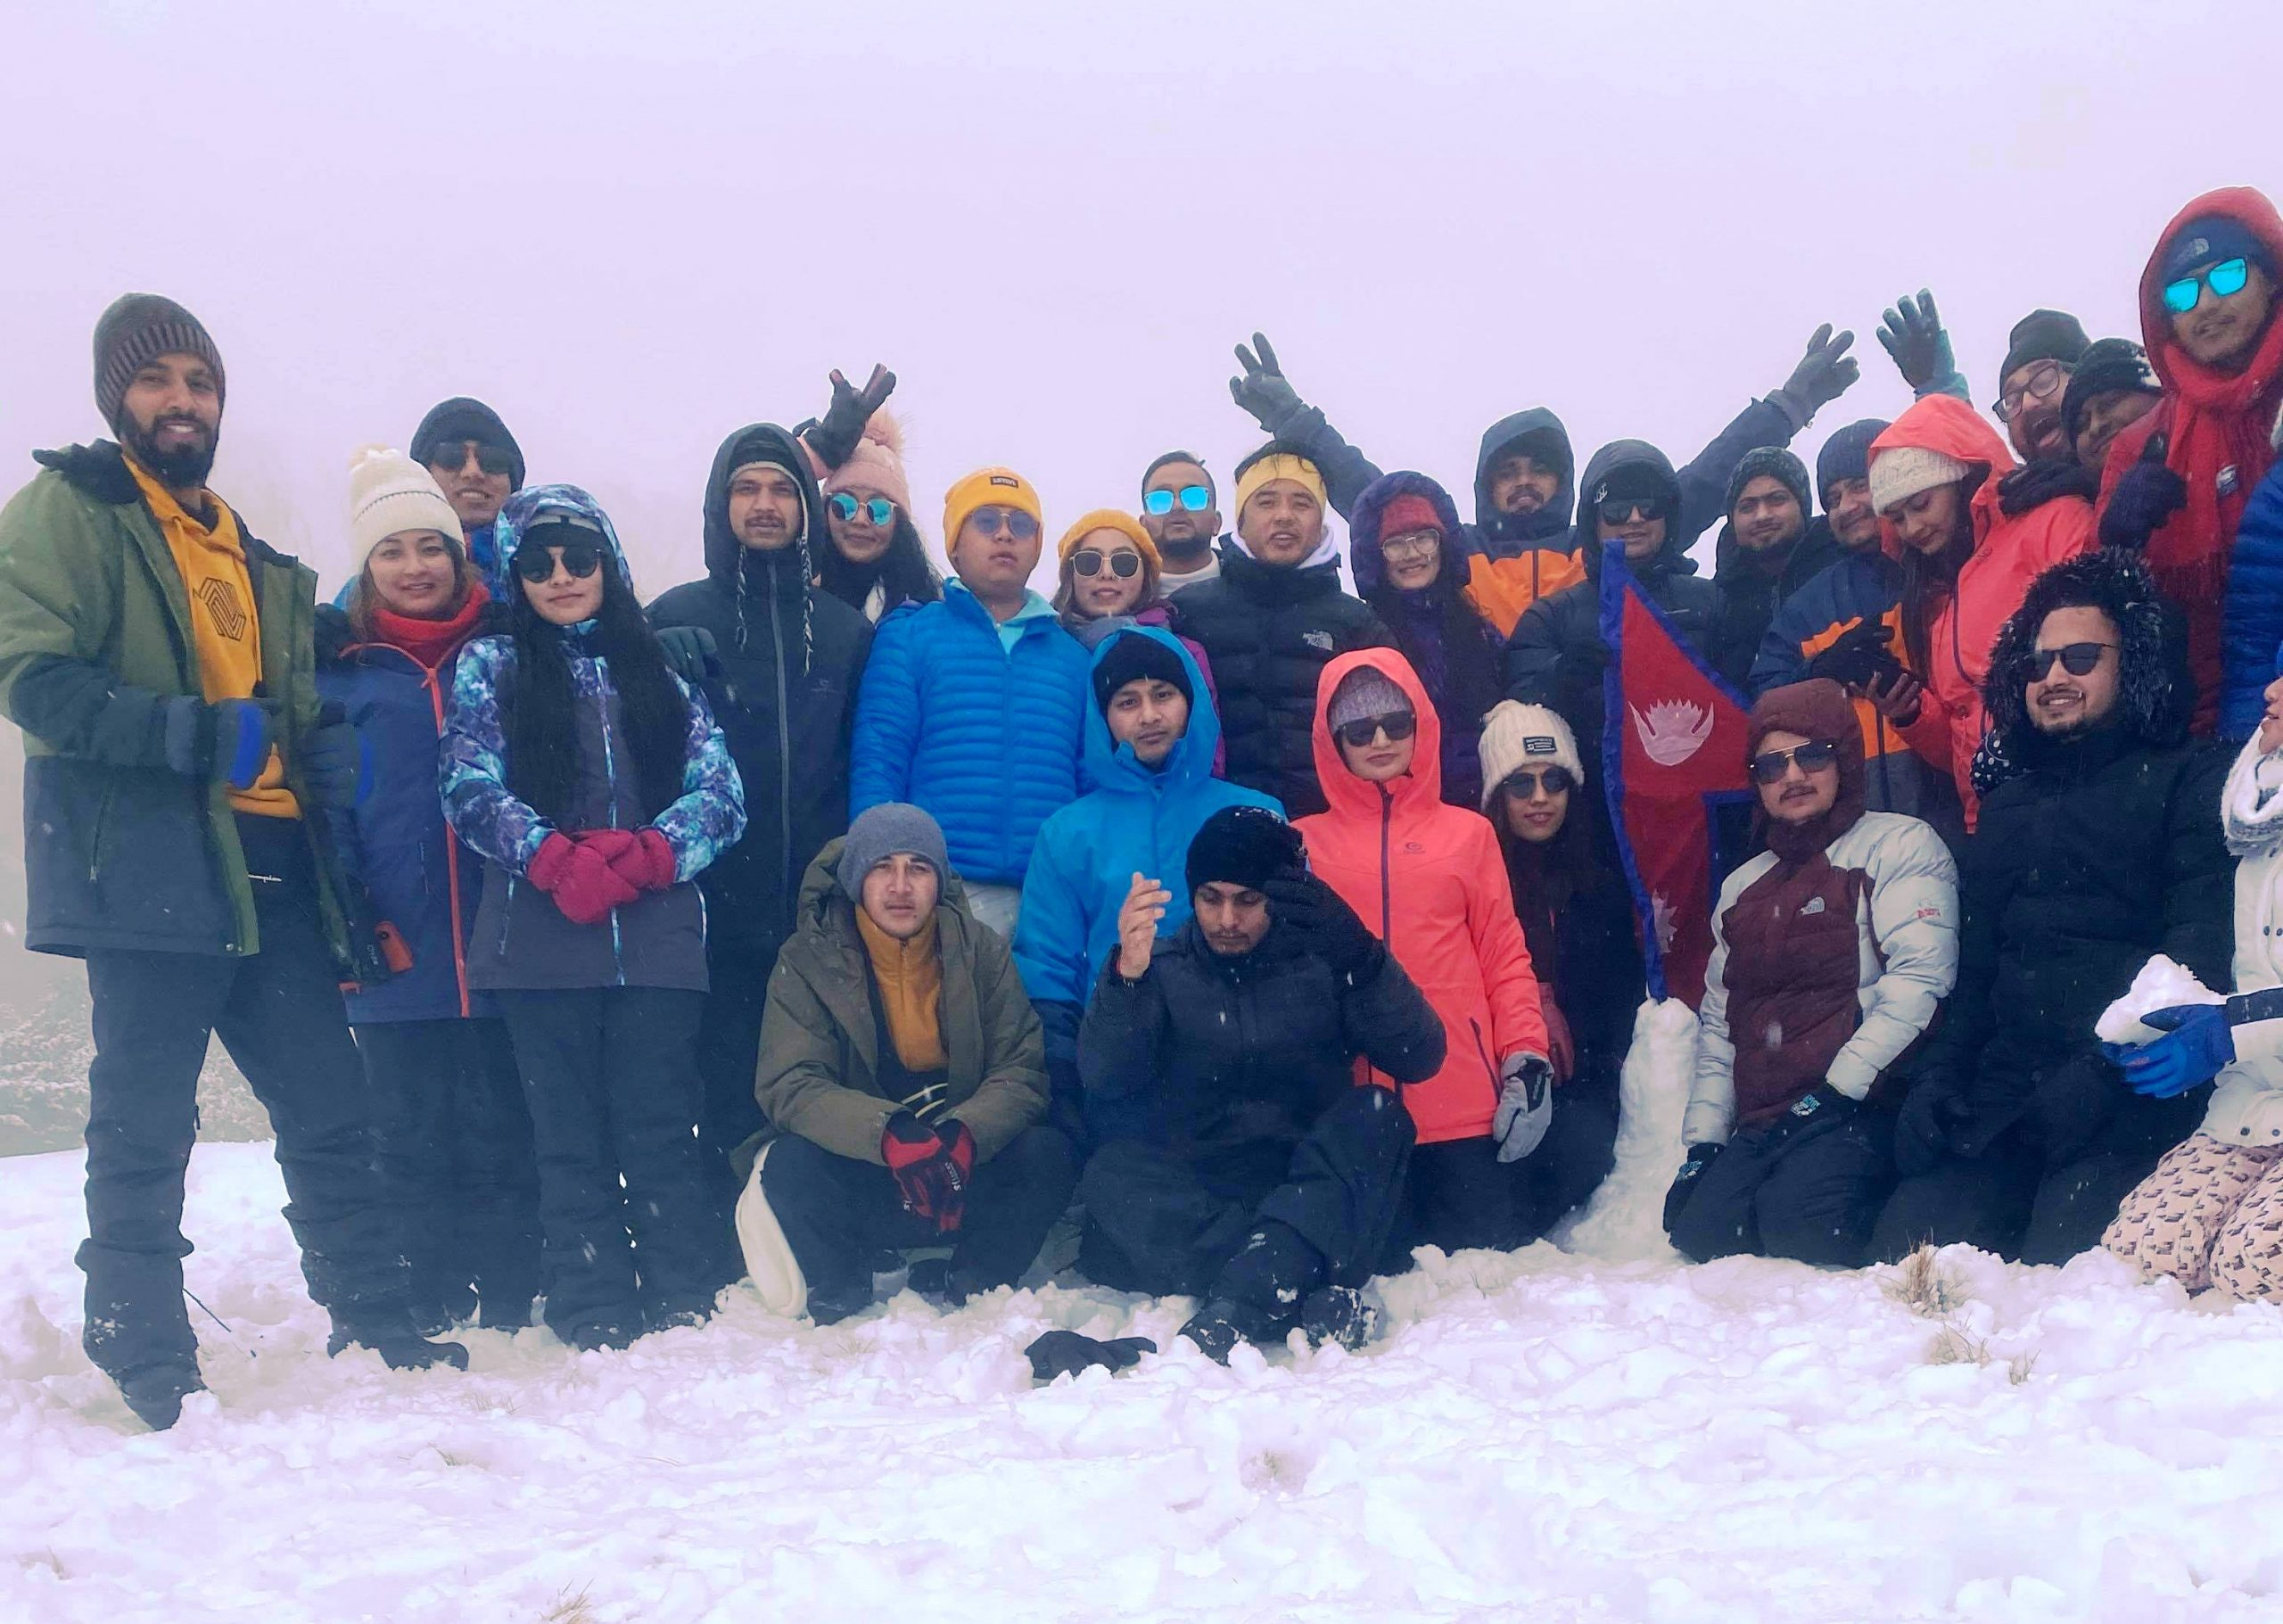 Nepalese in Snowy Mountain Area